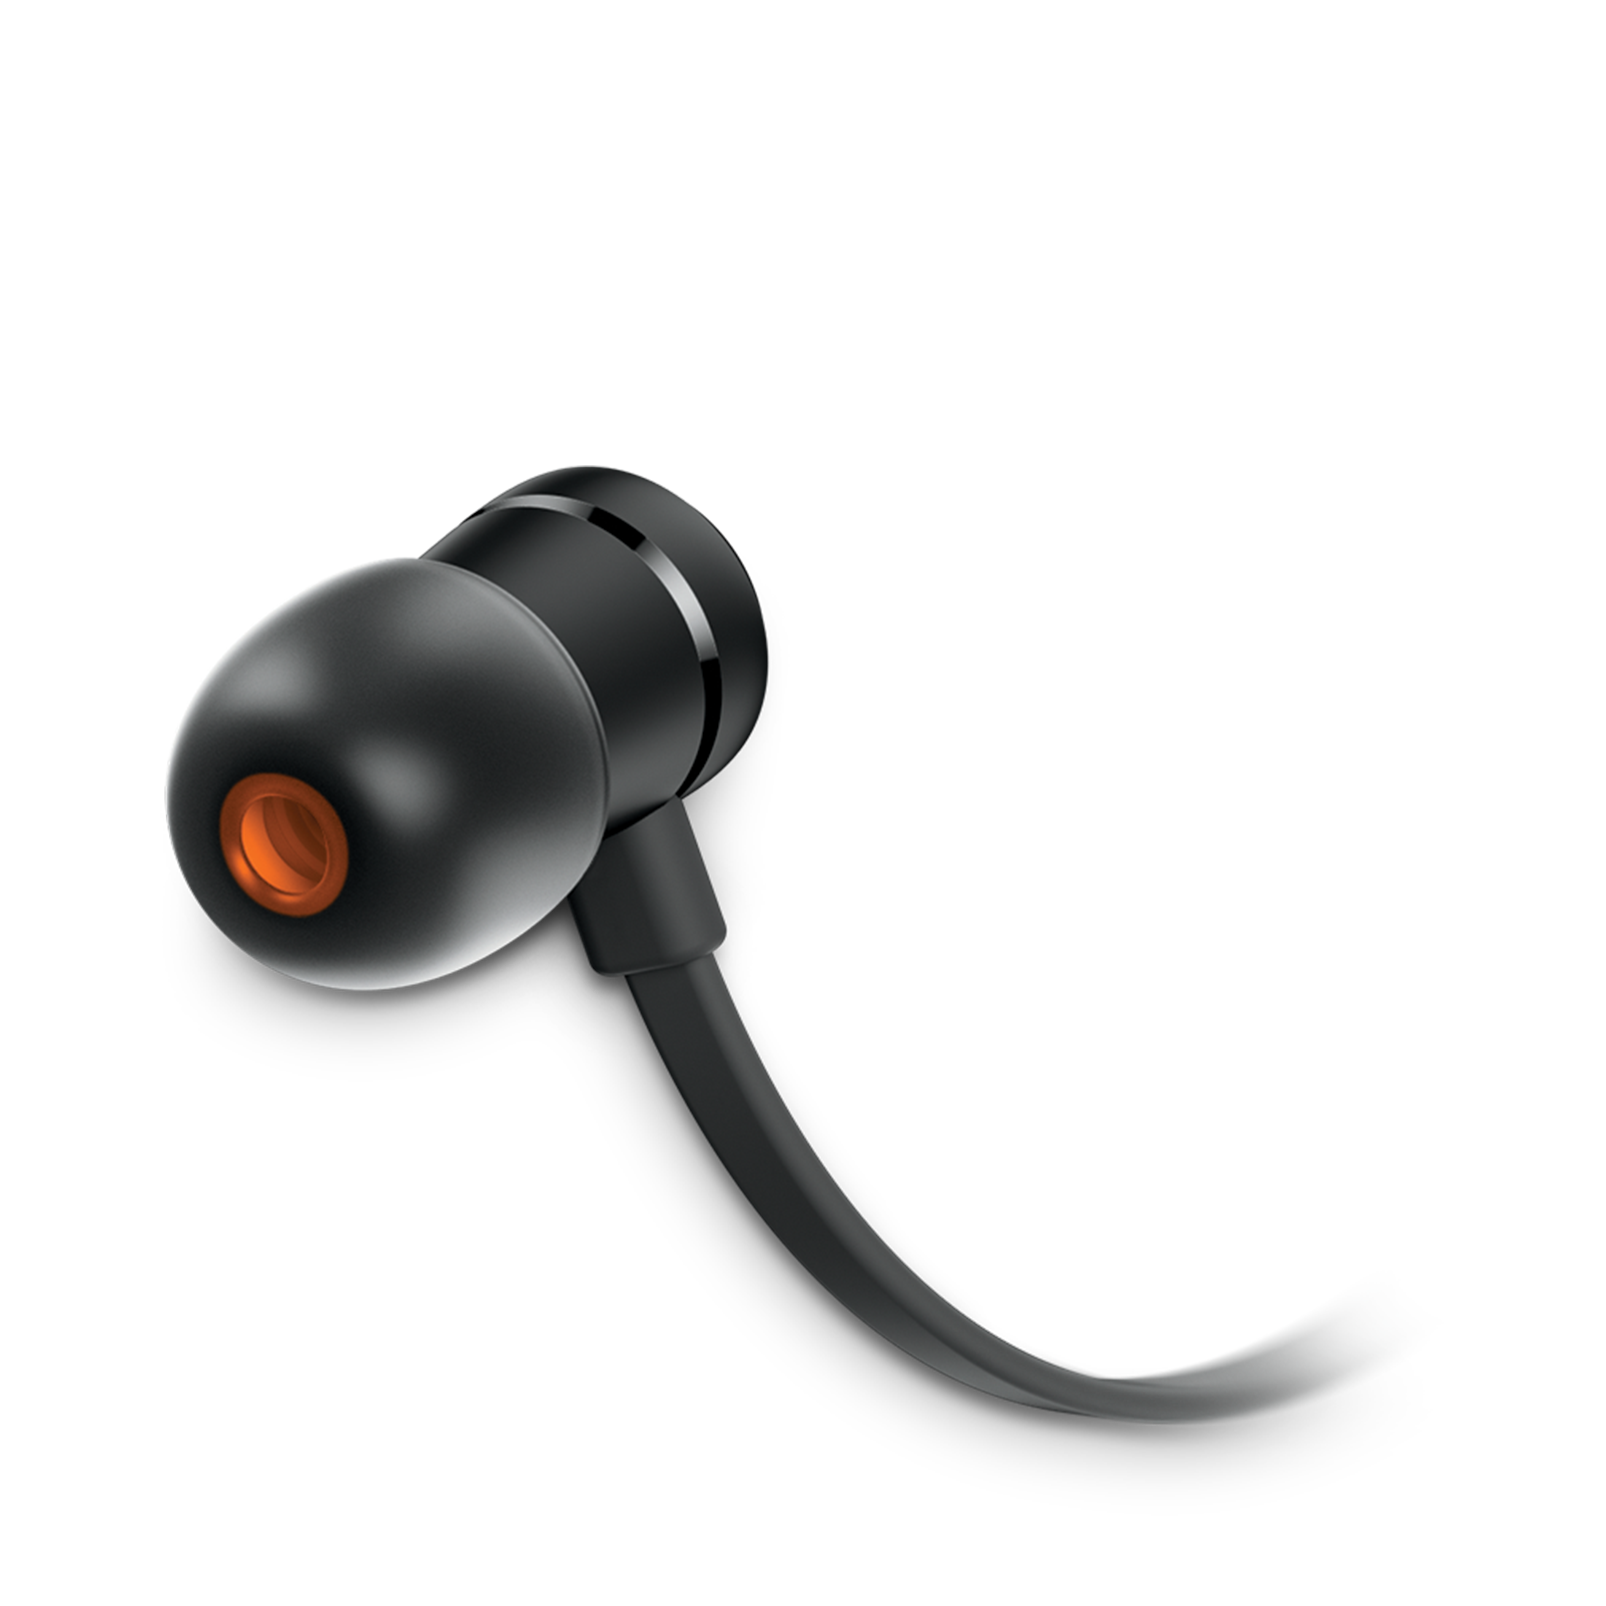 JBL TUNE 290 - Black - In-ear headphones - Detailshot 1